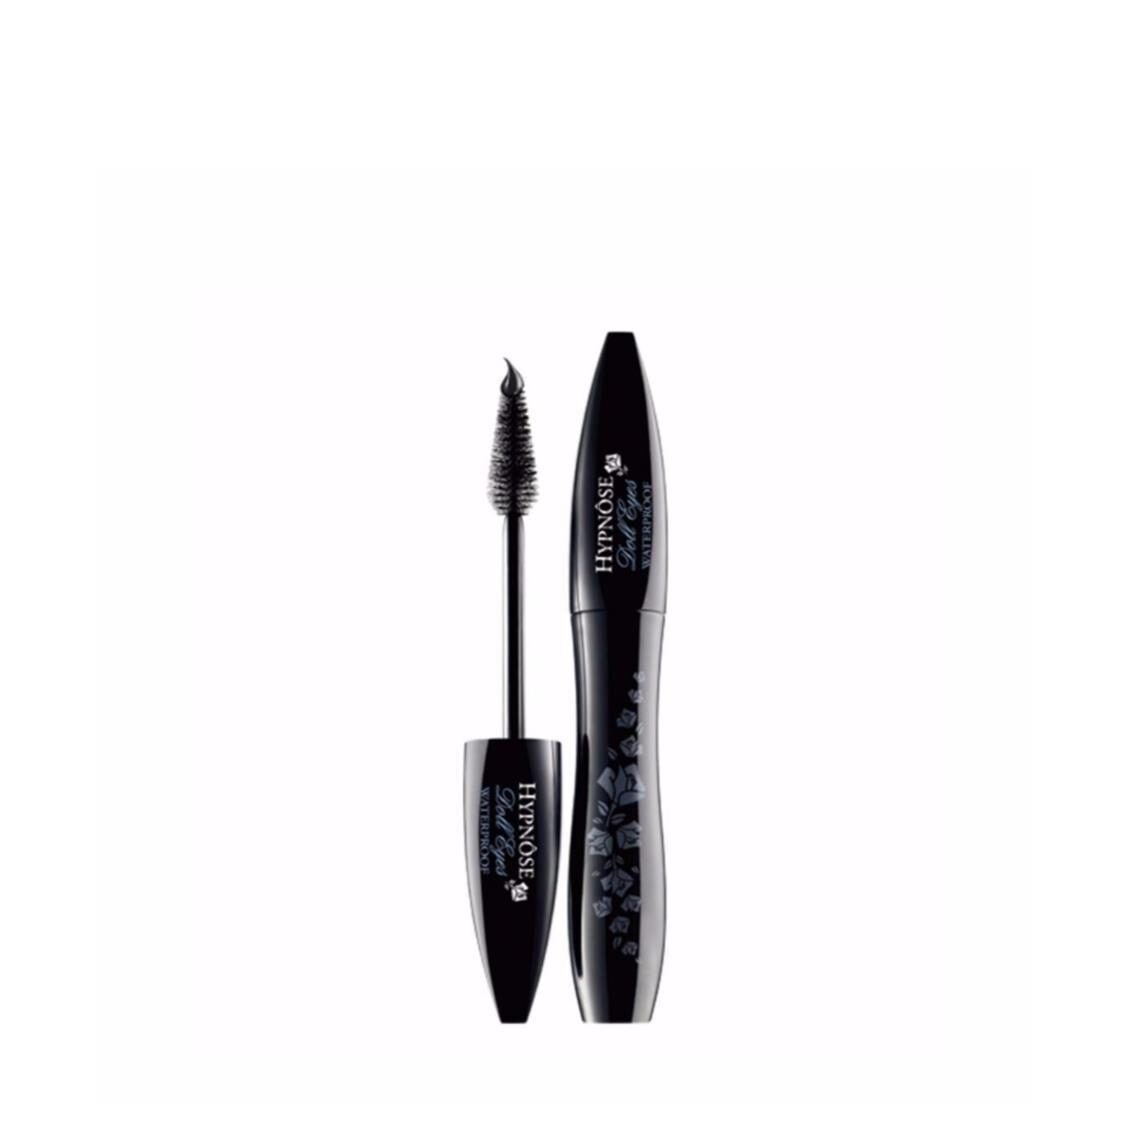 Hypnose Doll Eyes Waterproof Mascara Black